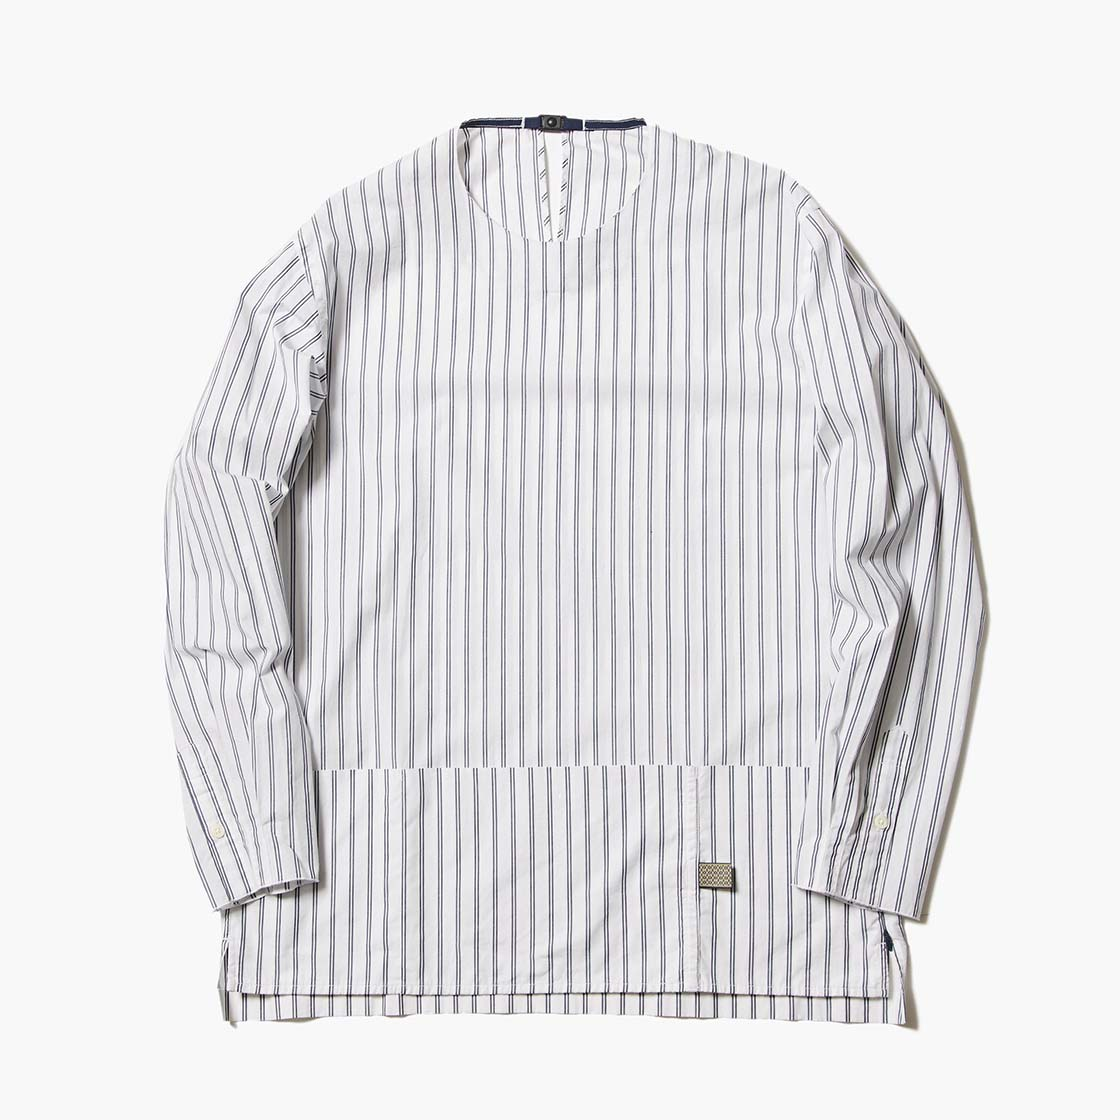 Argane Oil Cotton Stripe Pullover SH